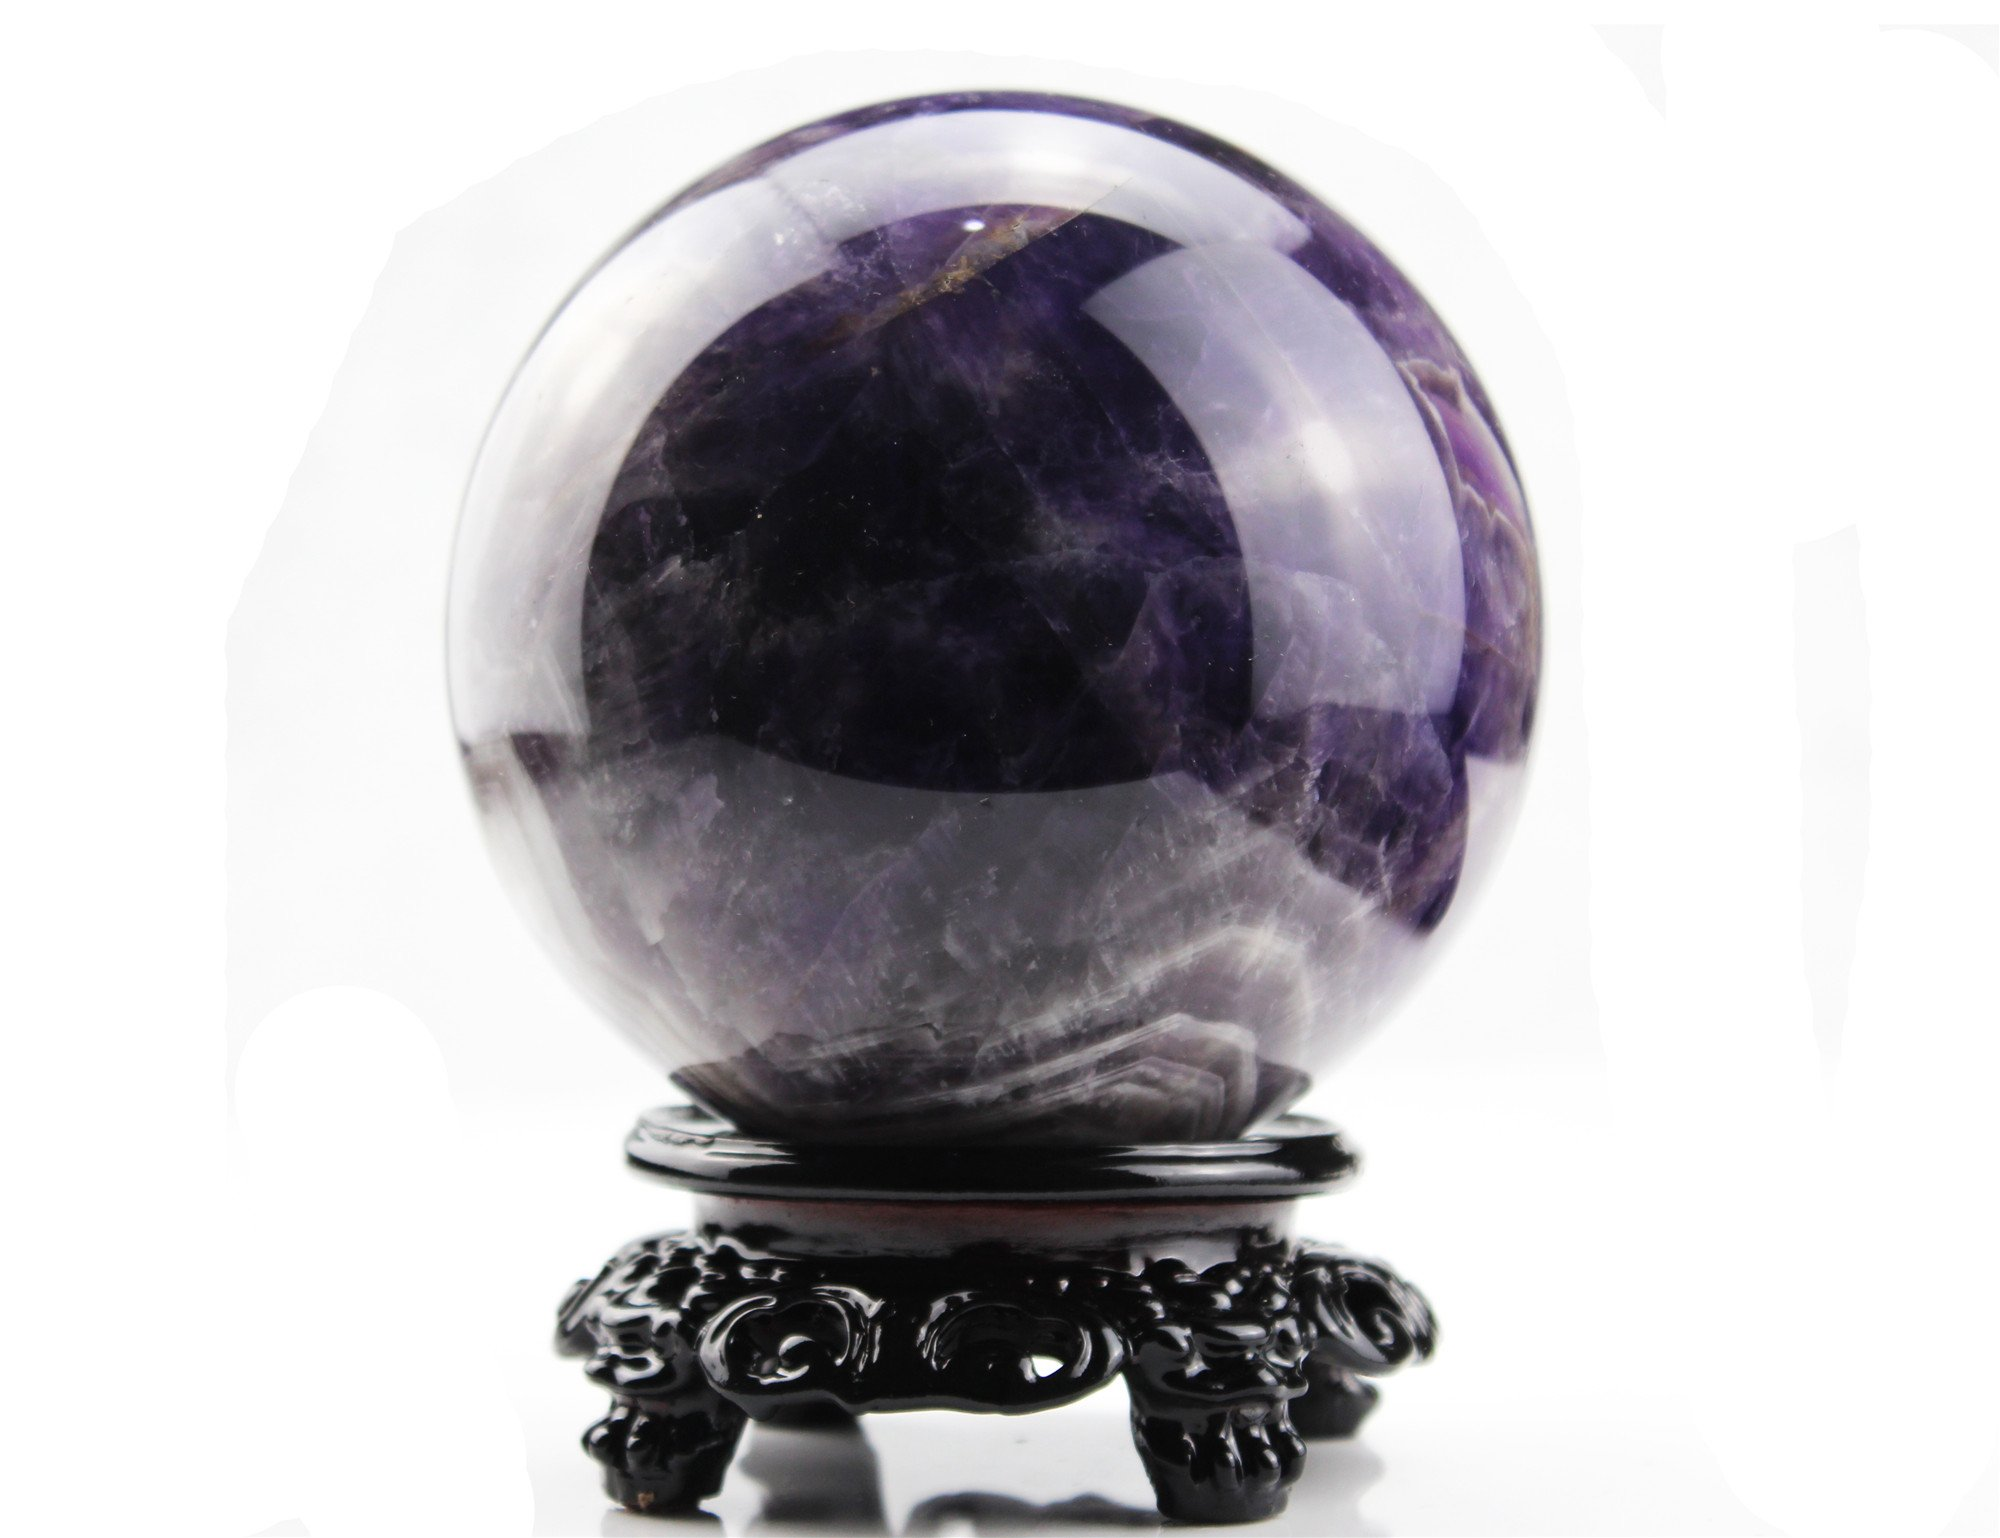 DeYue 4.3inch Natural Amethyst Dream Magic Crystal Ball Sphere with stand foundation For Fengshui, Meditation, Crystal Healing, Divination, Home Decoration